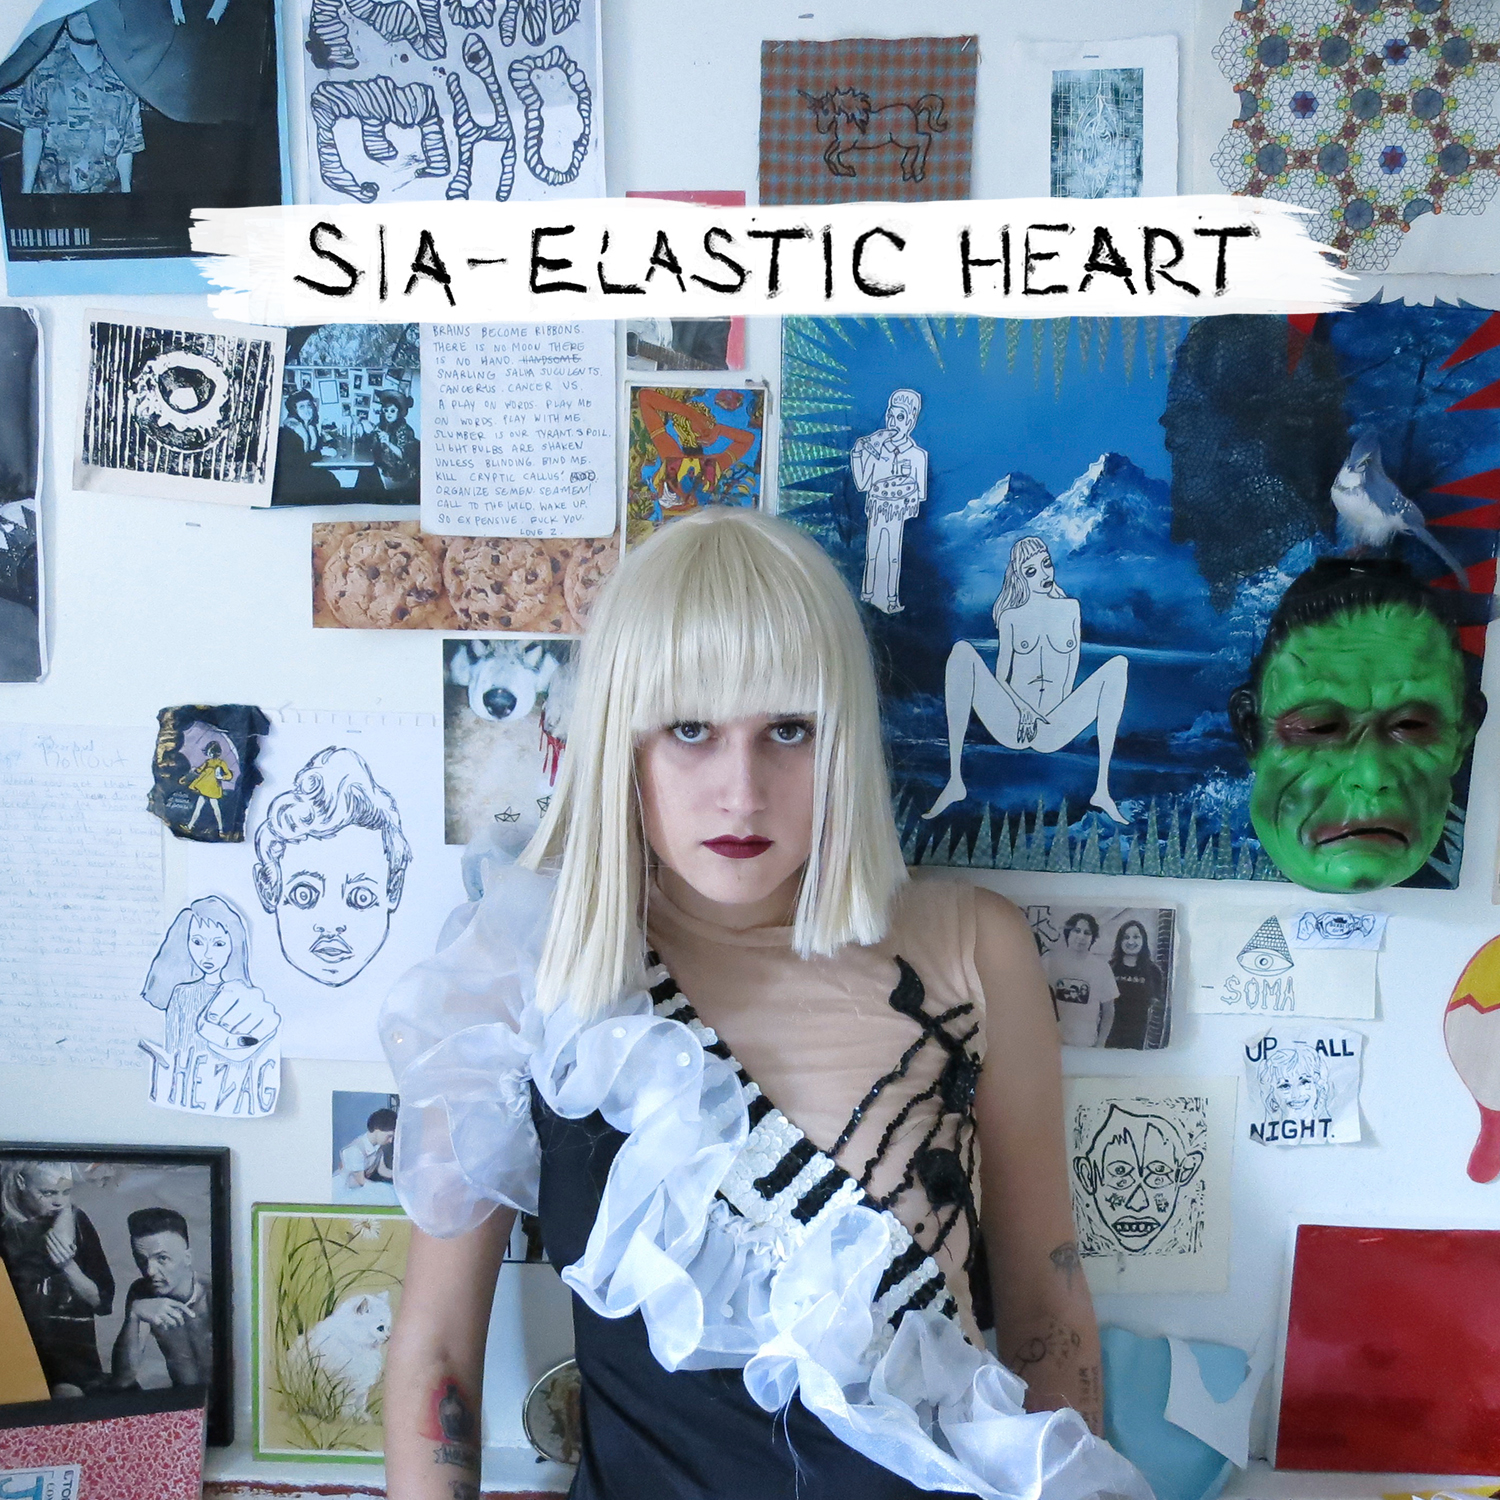 Elastic Heart | Sia Wiki | FANDOM powered by Wikia